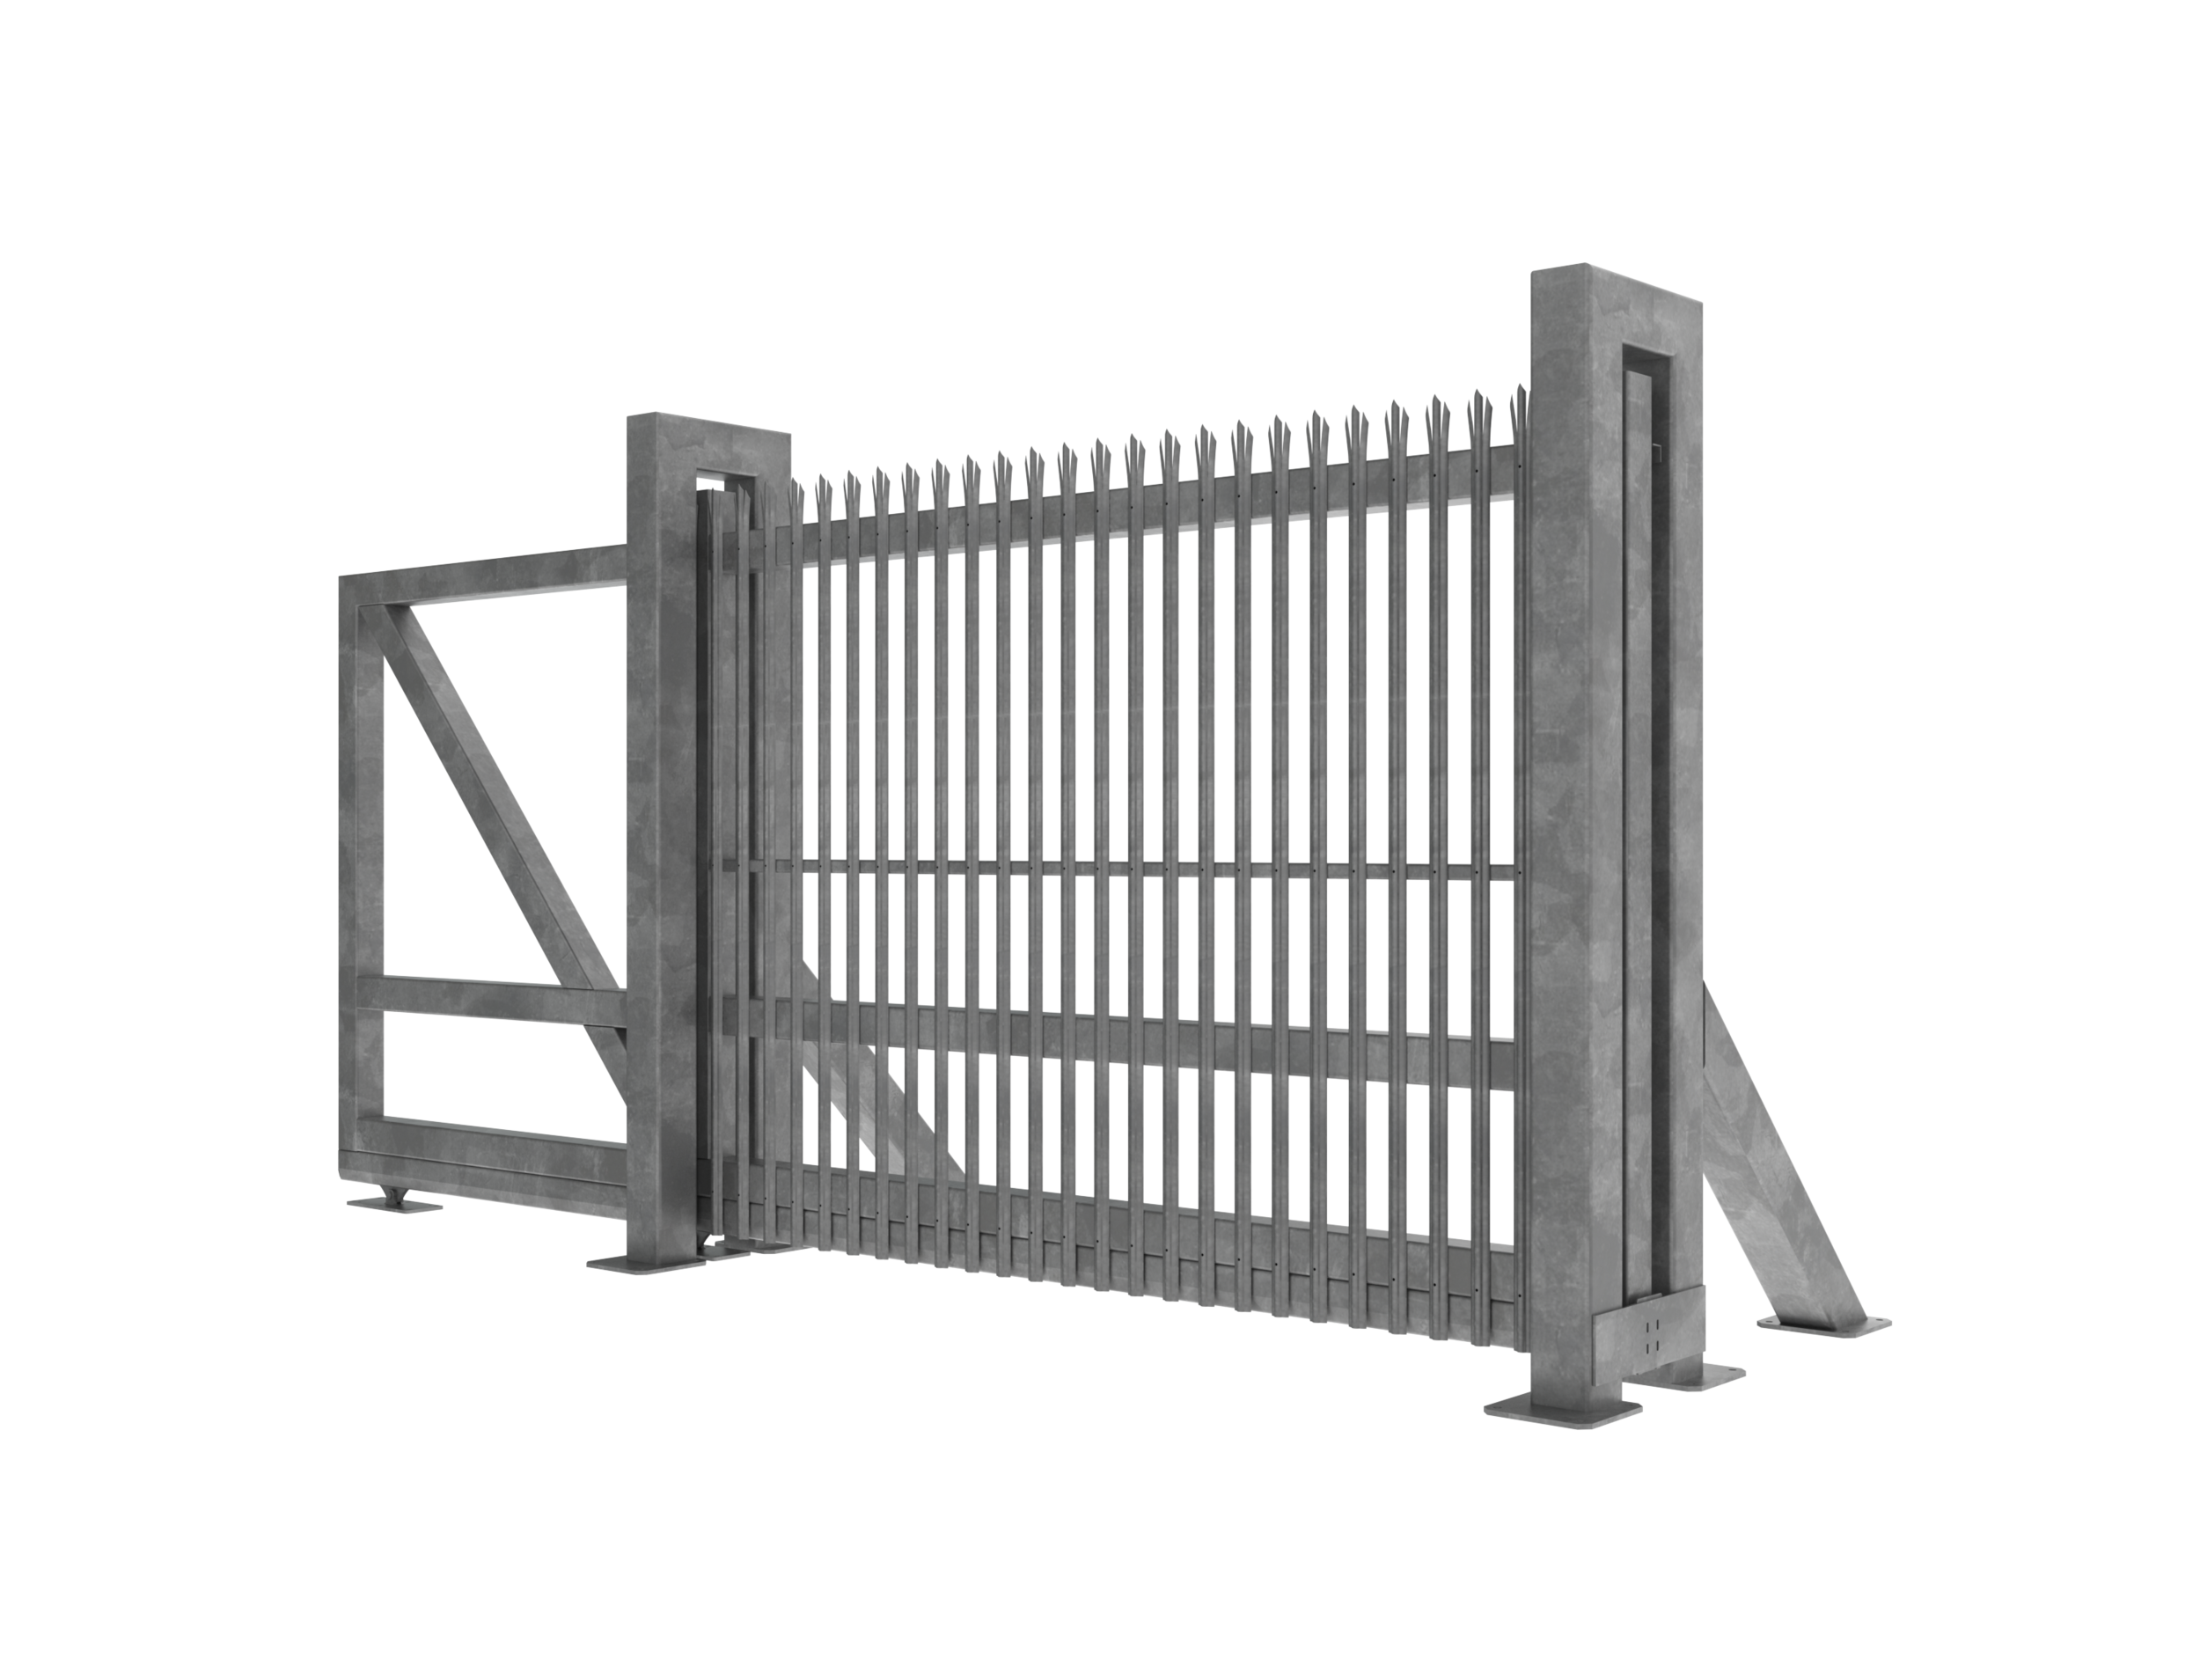 Crash-Proof Gates